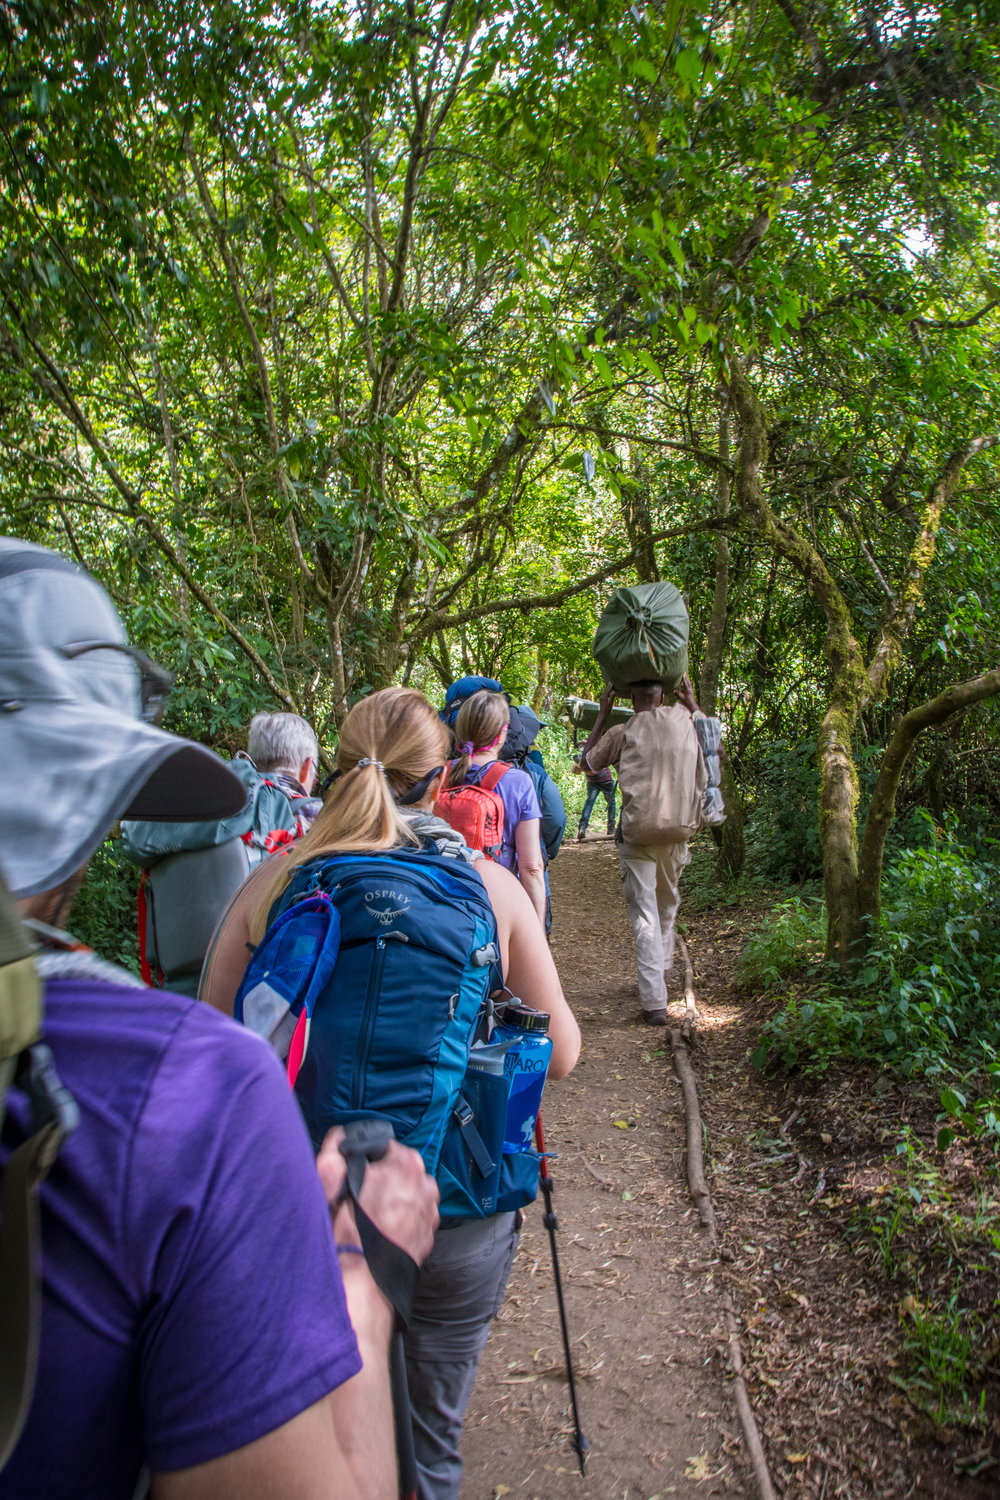 Our group hiking in the Jungle Zone